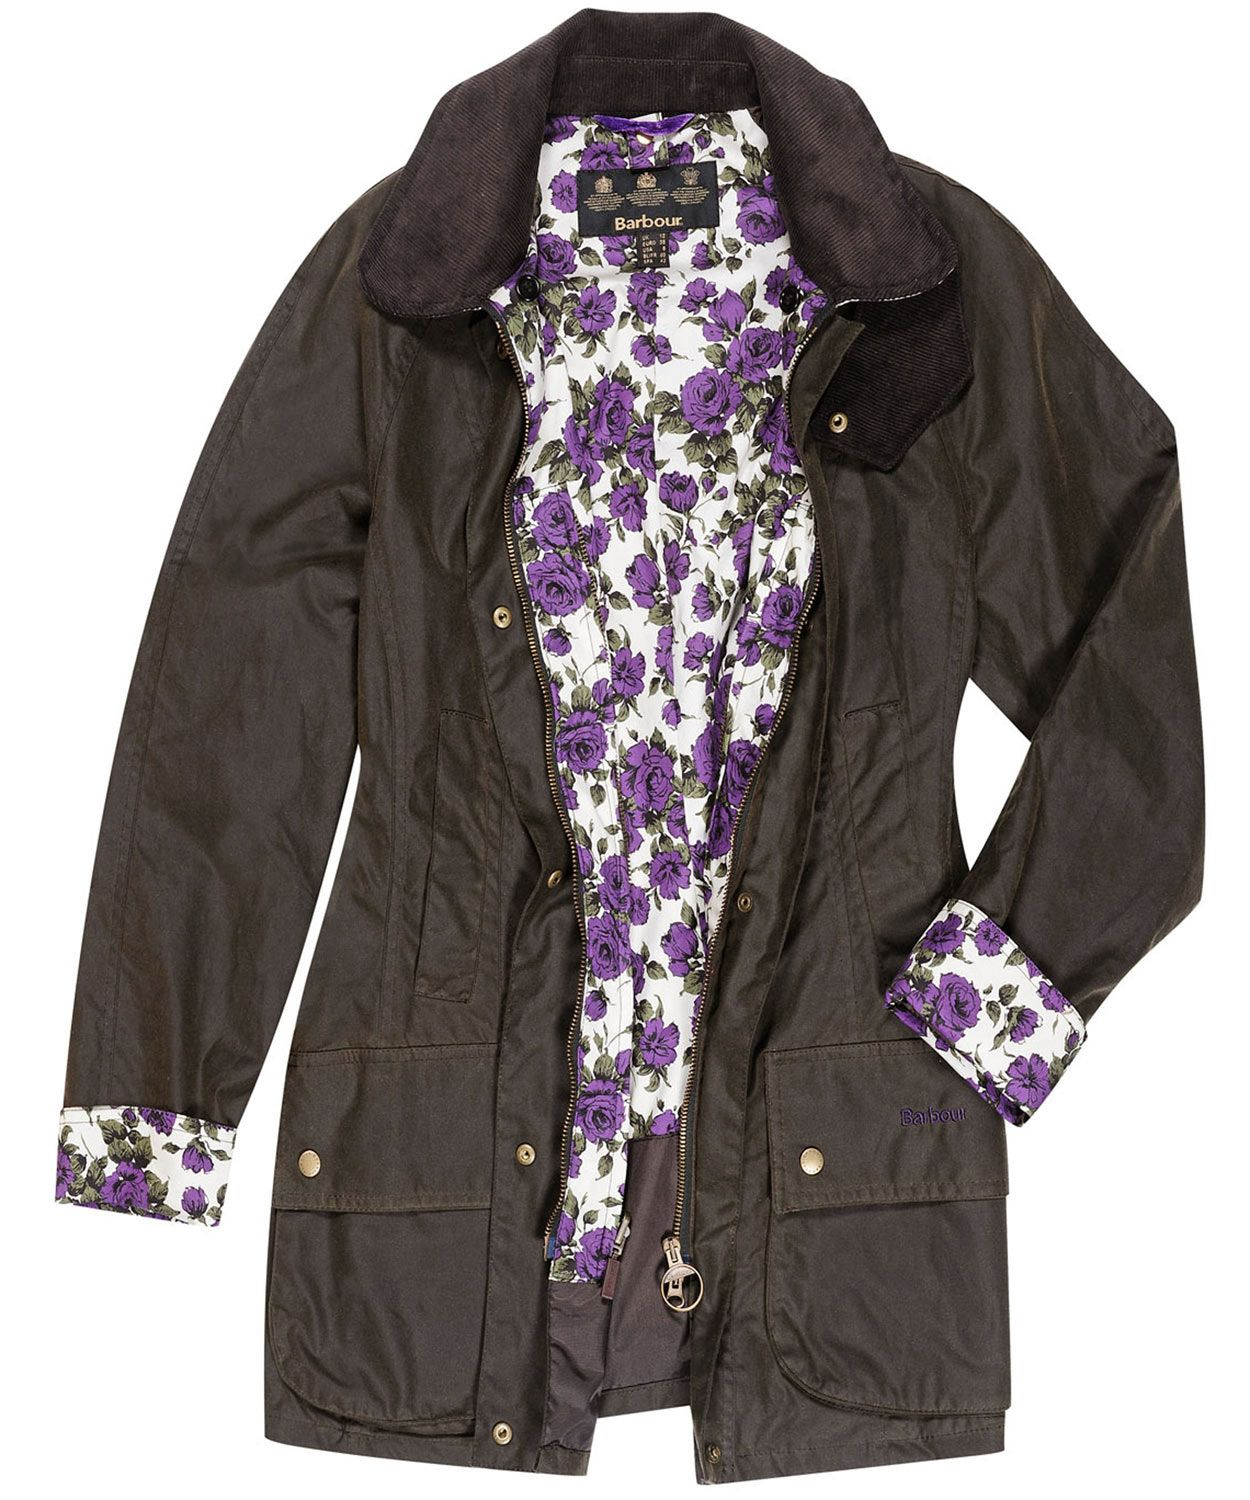 Barbour Jacket Liberty Lining